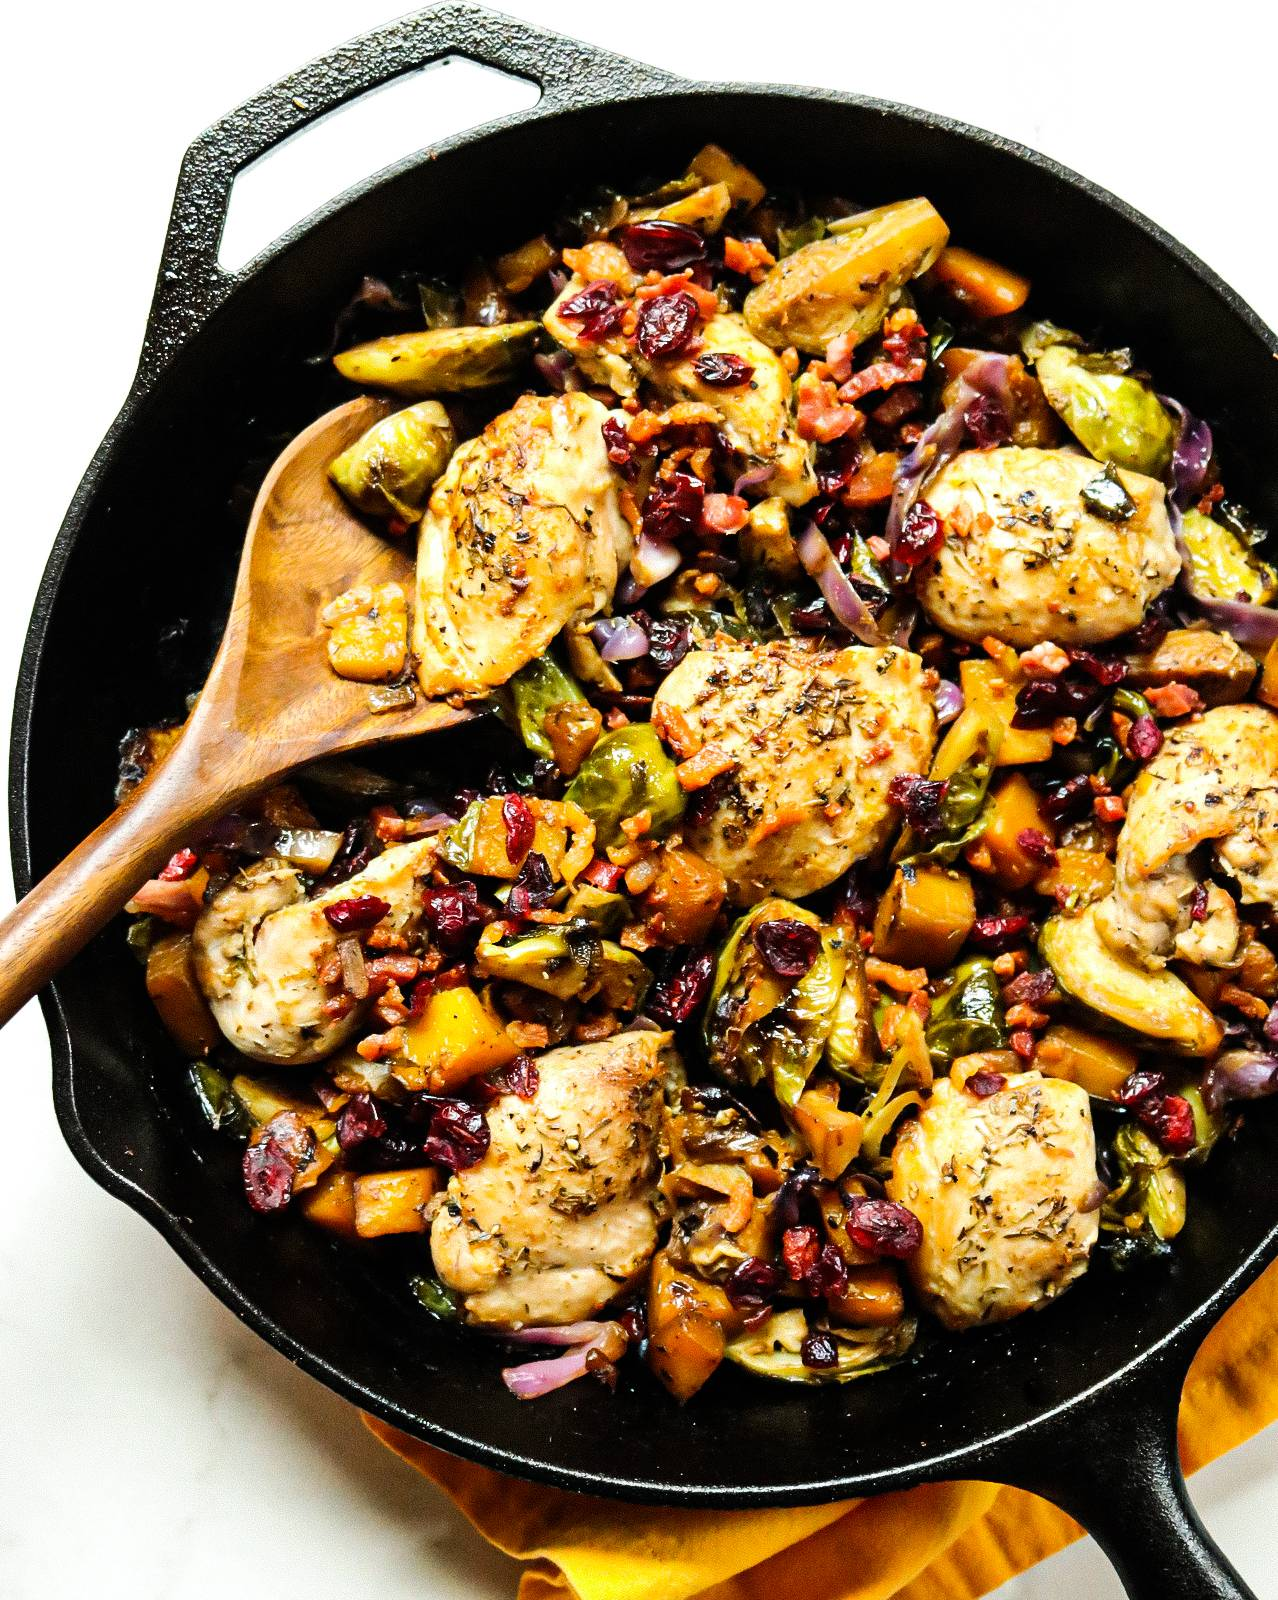 One Pan Chicken Skillet with Kabocha Squash, Brussels sprouts and Pancetta